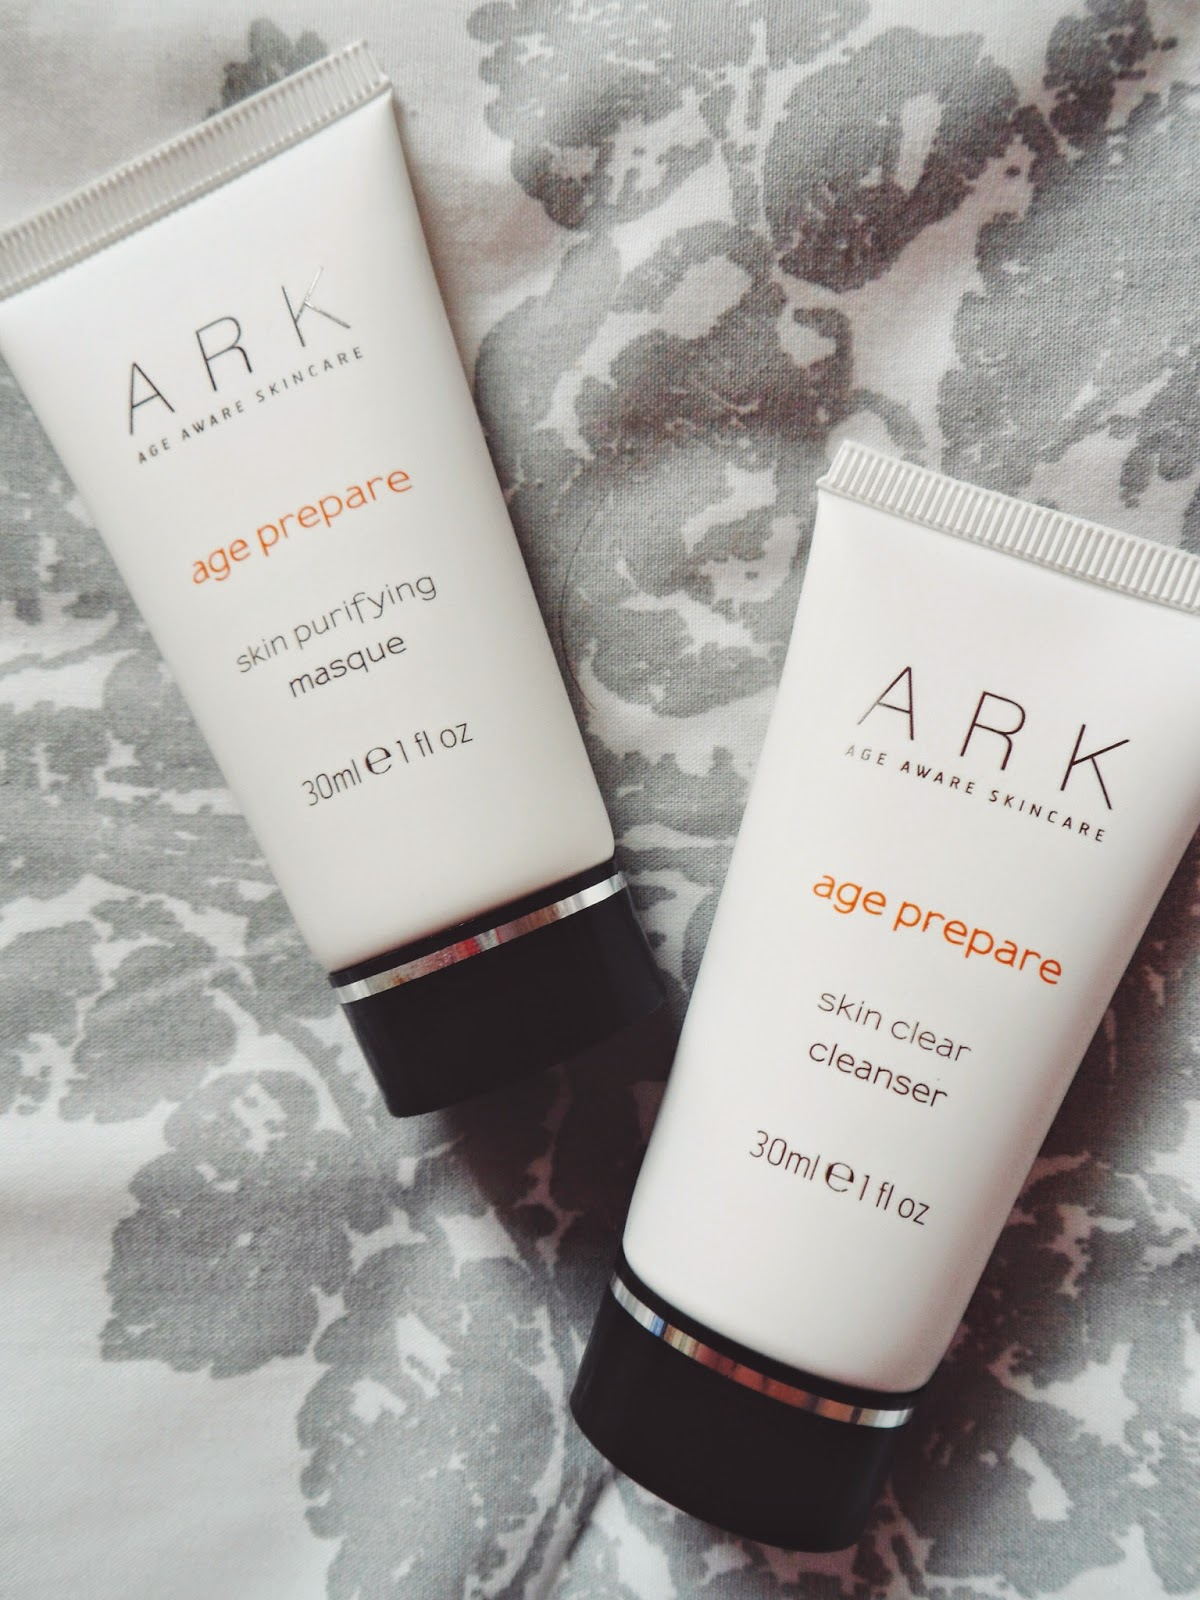 arkskincare, arkskincareputney, bbloggers, beauty, beautybloggers, cleanser, exfoliator, fashionbloggers, fbloggers, london, masque, moisturiser, putney, review, skincare,